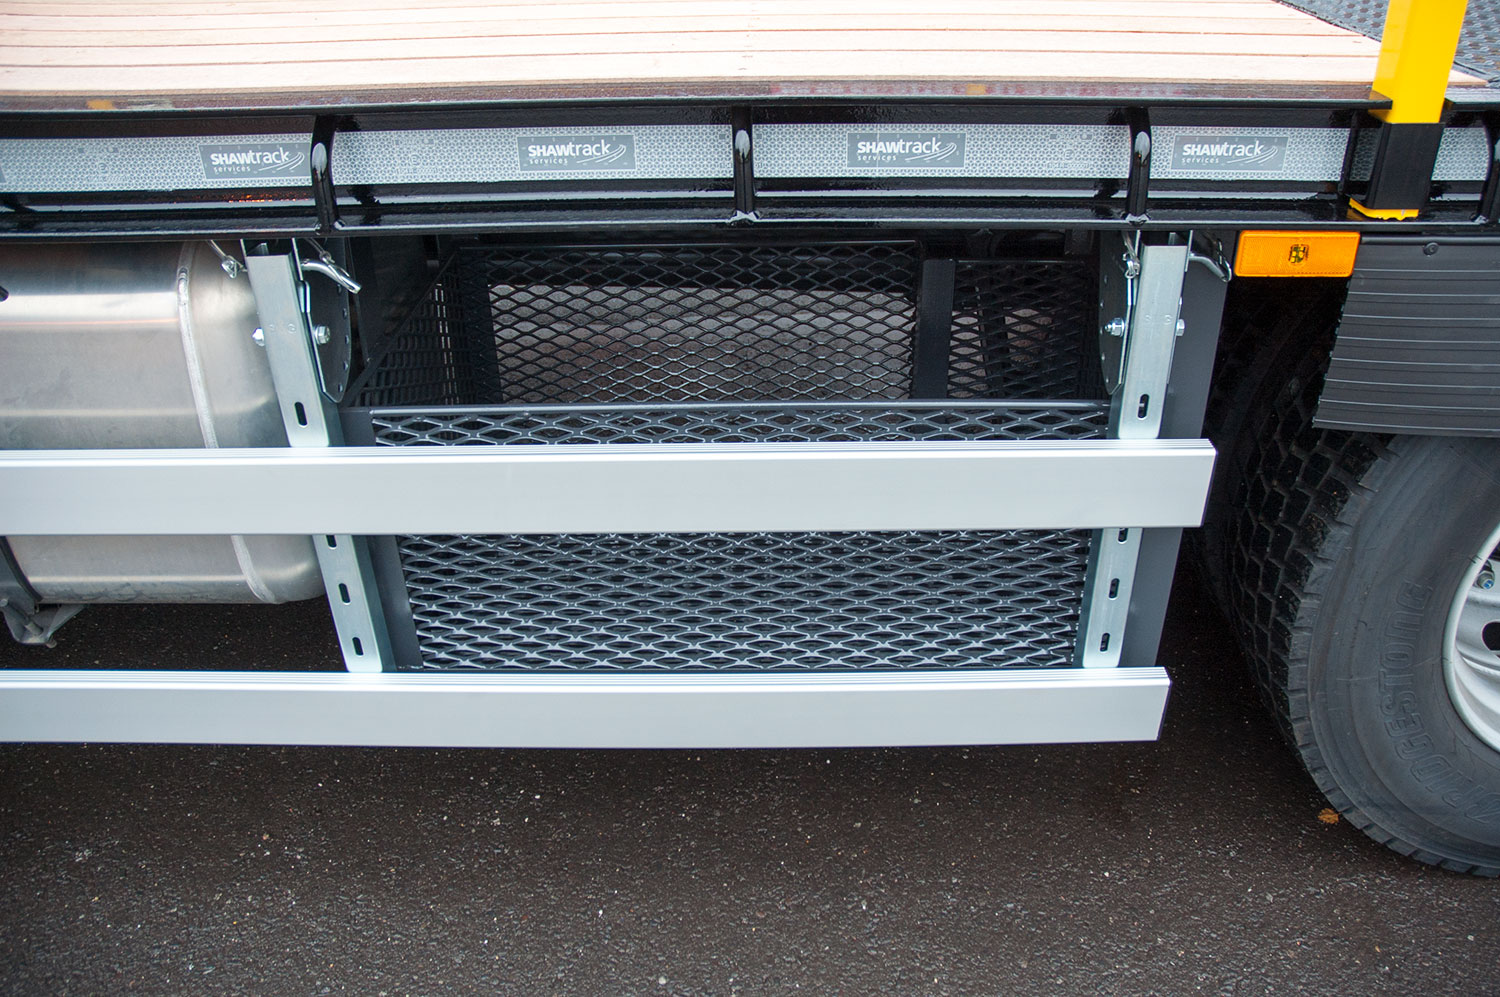 18 tonne extending beavertail underbody storage tray